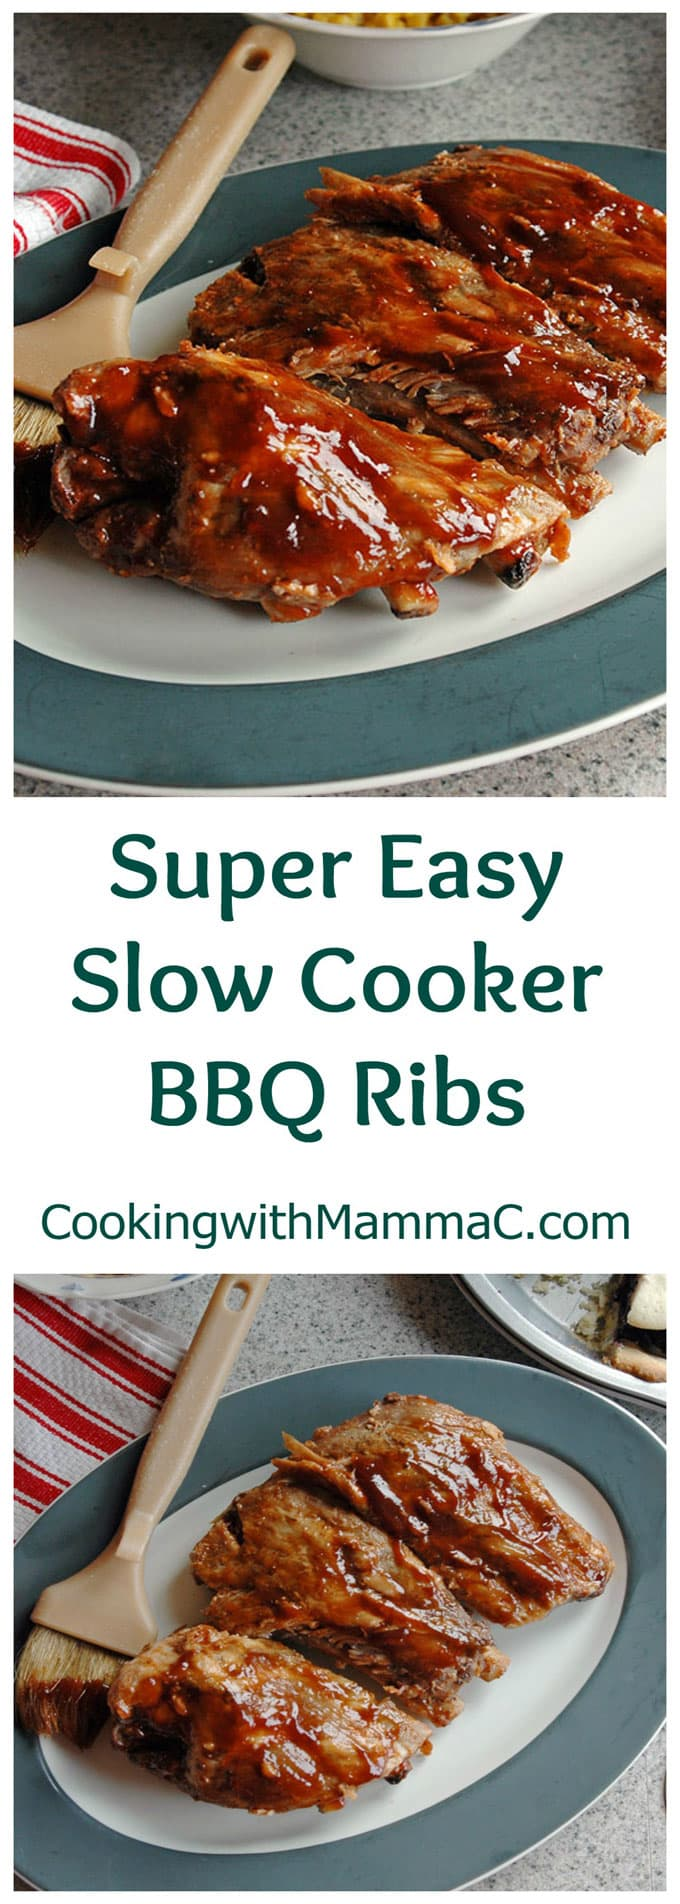 Super Easy Slow Cooker BBQ Ribs - My simple, no-brainer method for falling-off-the-bone barbecue ribs in the crock pot! A huge family favorite for years!